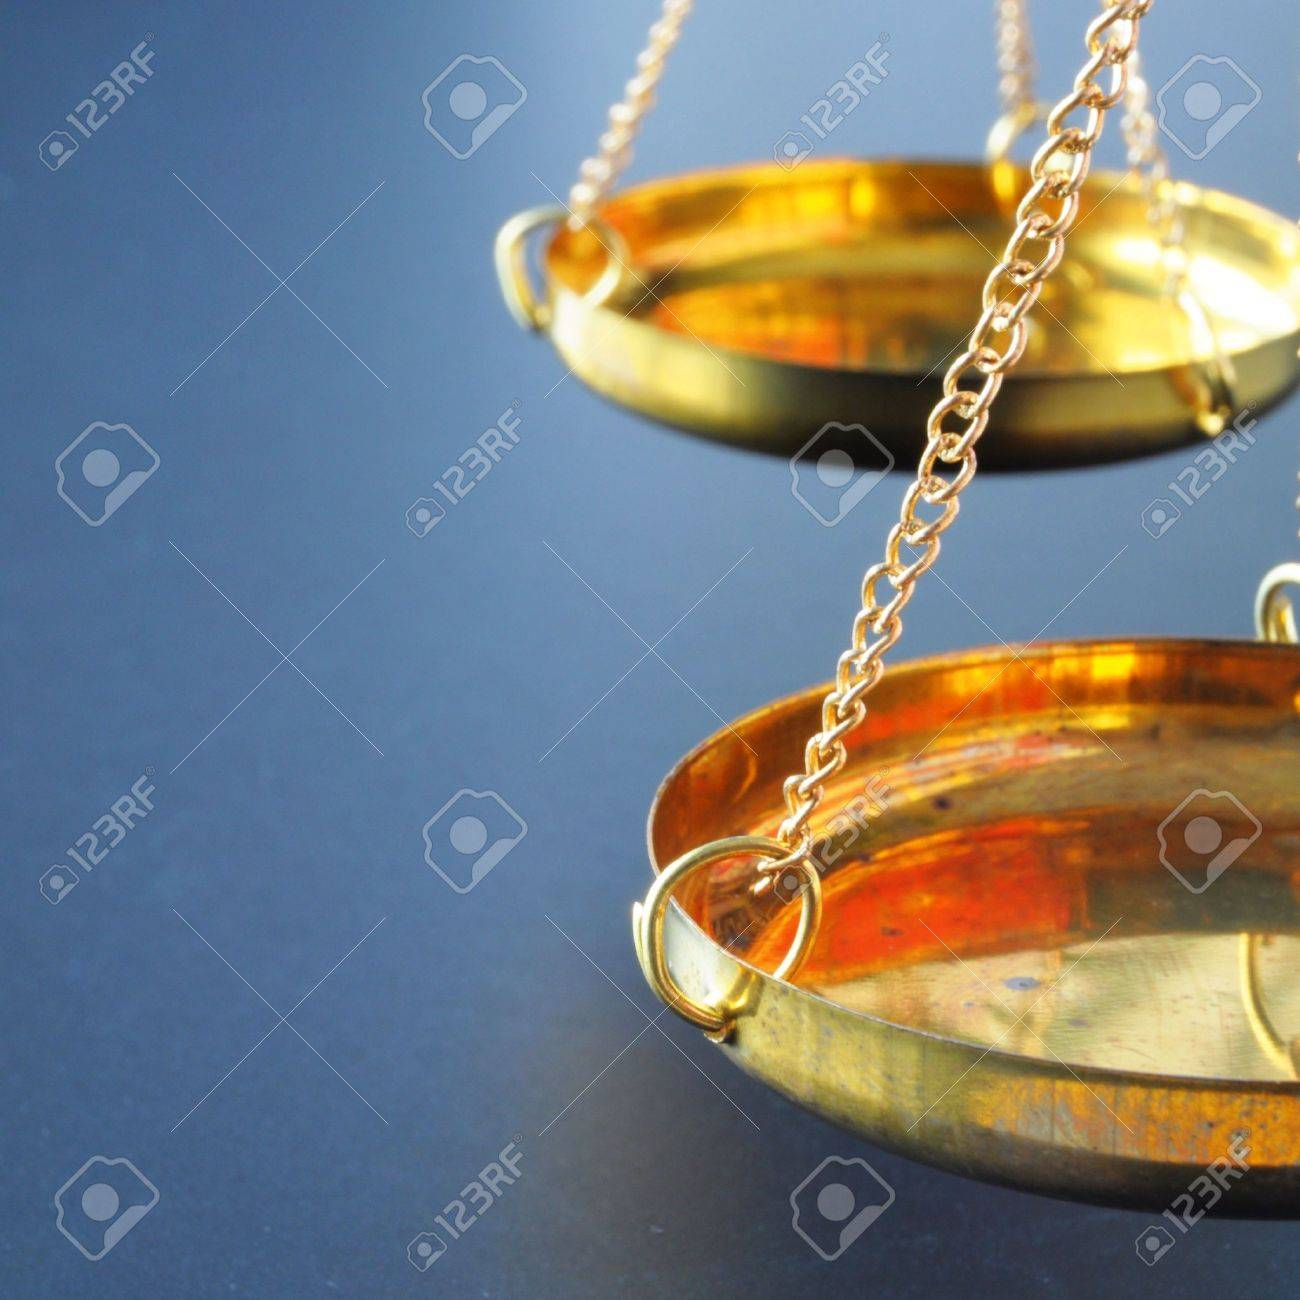 scale or scales with copyspace showing law justice or legal concept Stock Photo - 8705469